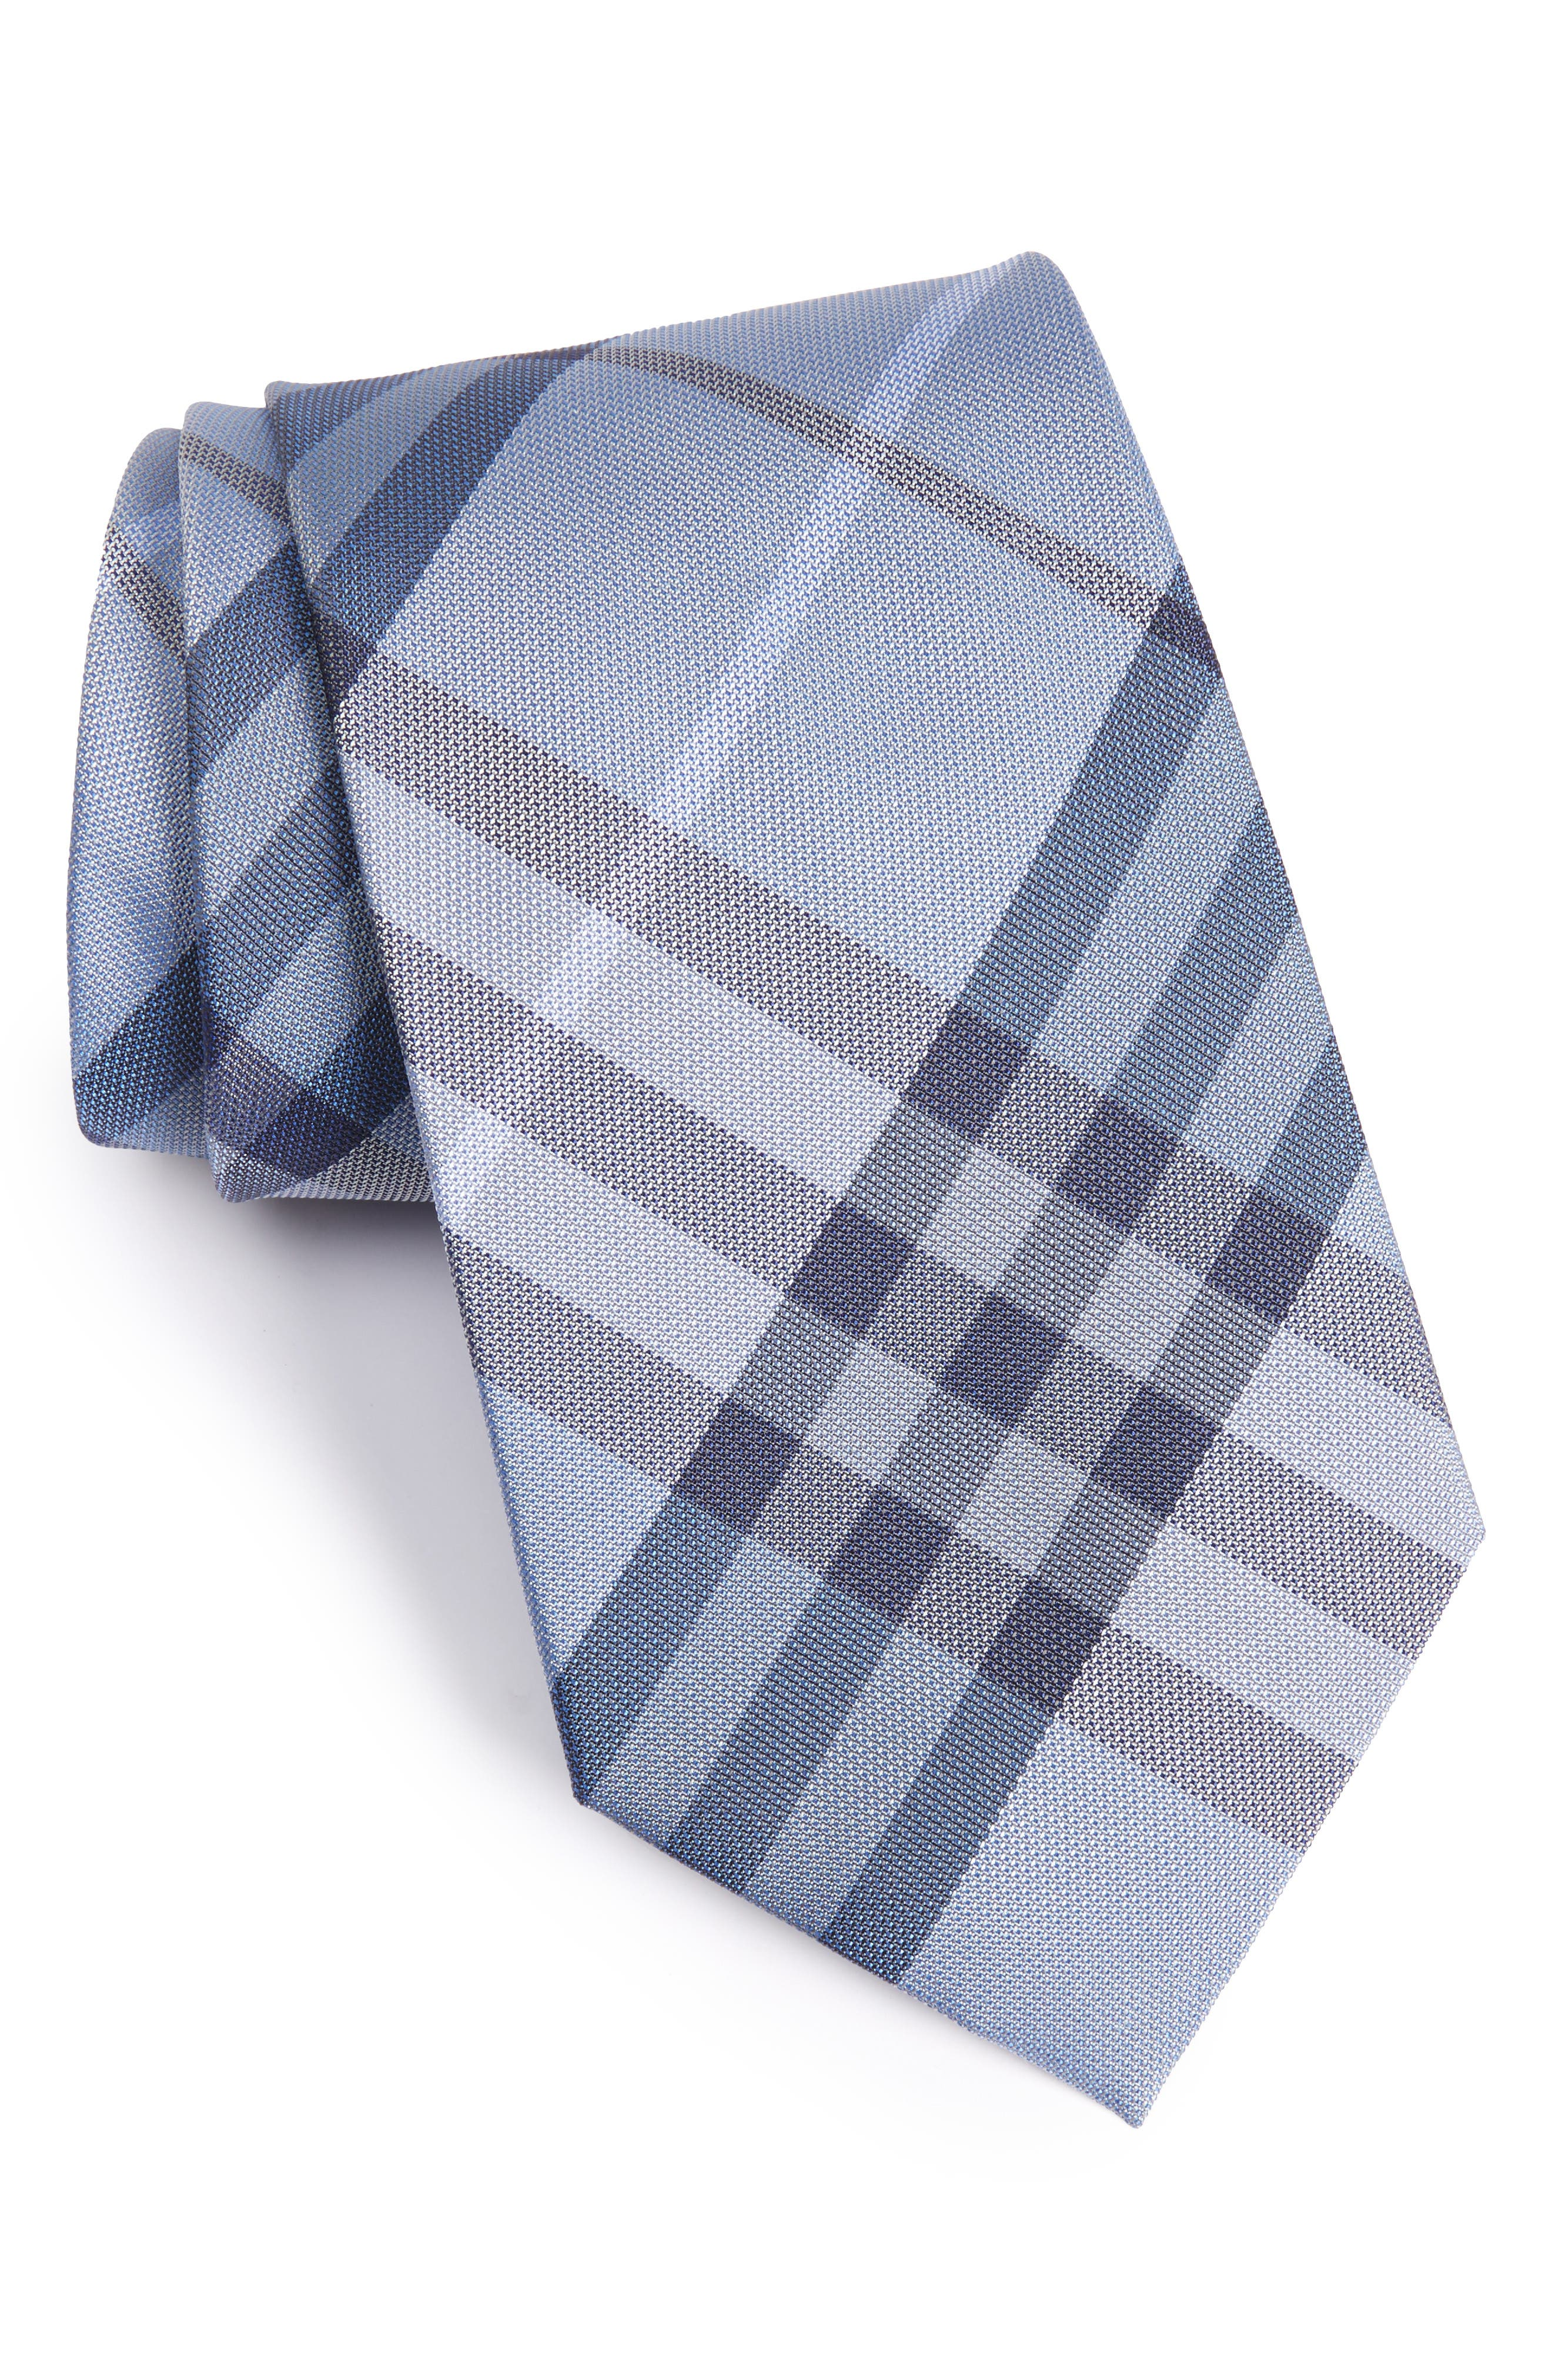 Alternate Image 1 Selected - Burberry Clinton Check Silk Tie